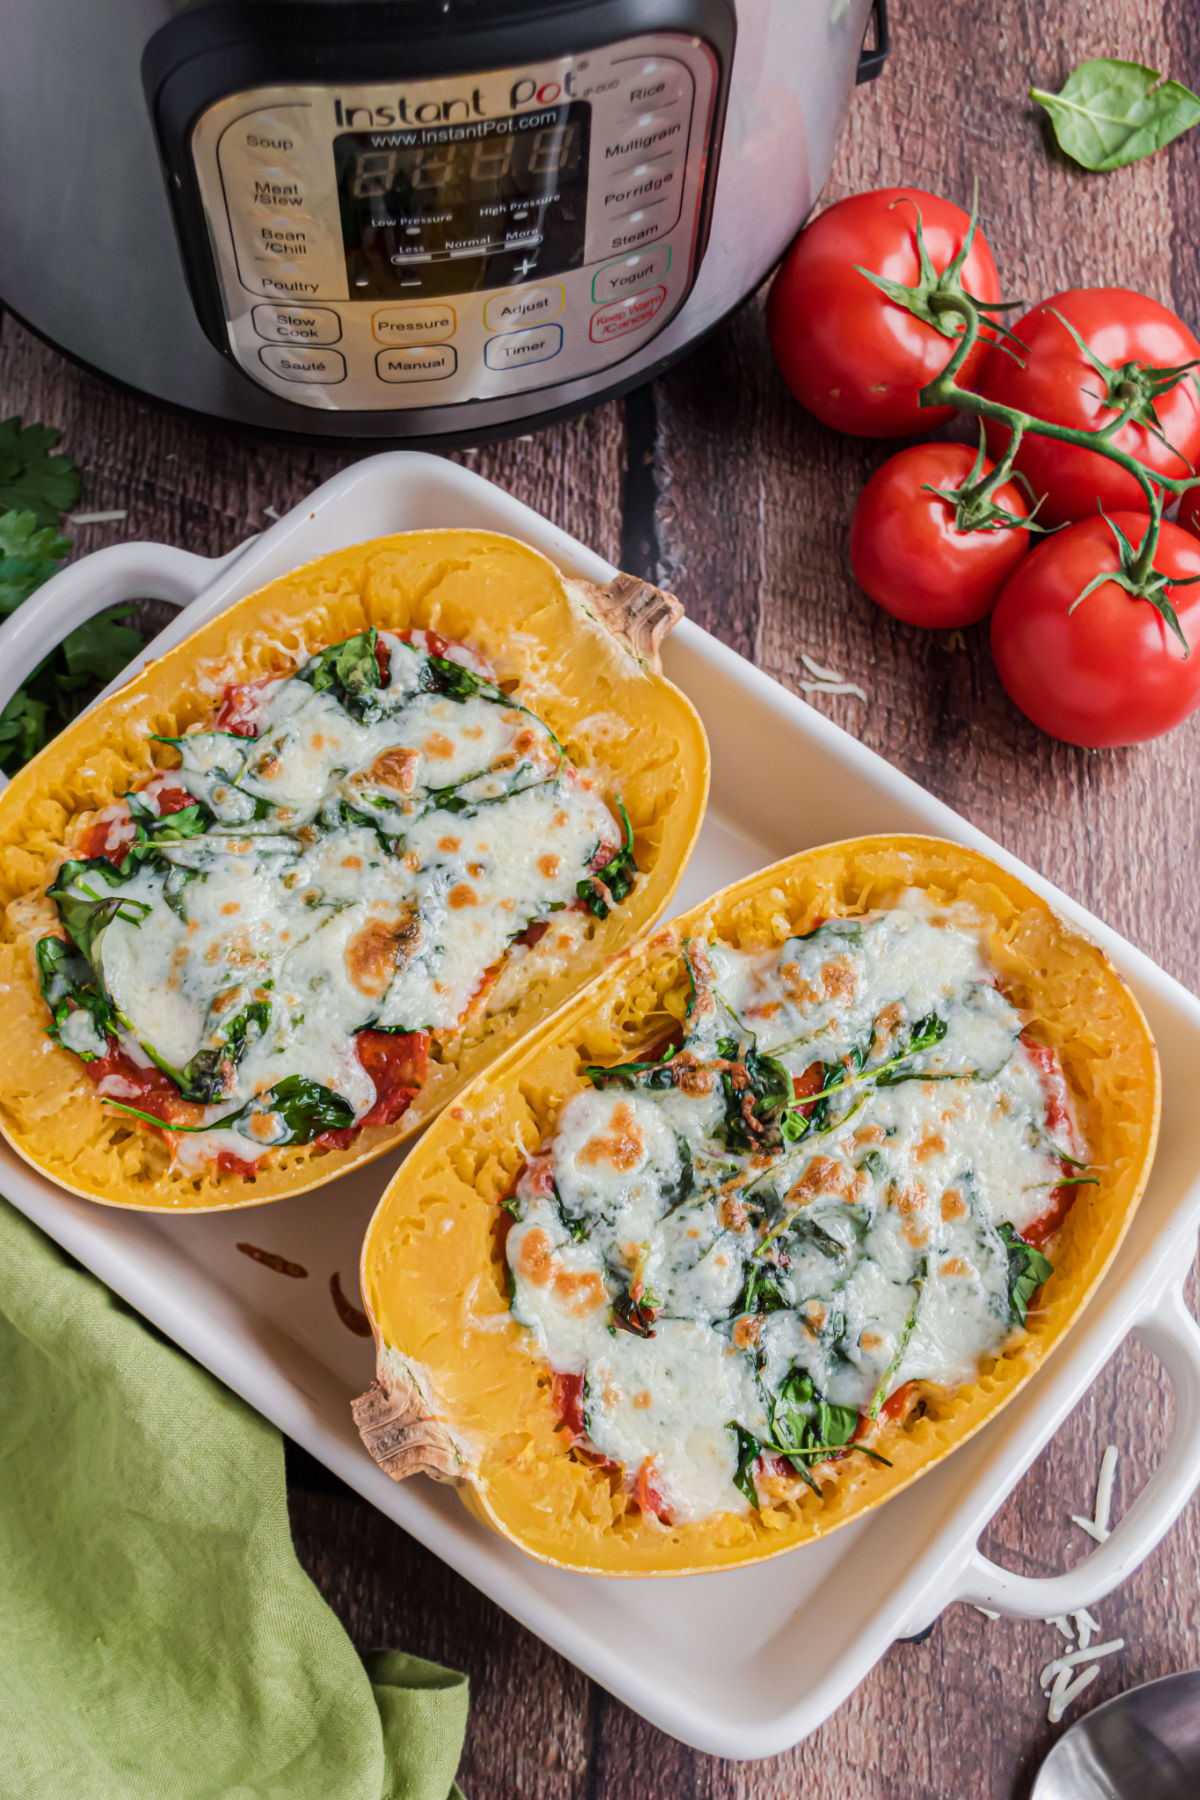 Spaghetti squash halves in a baking dish topped with melted cheese.